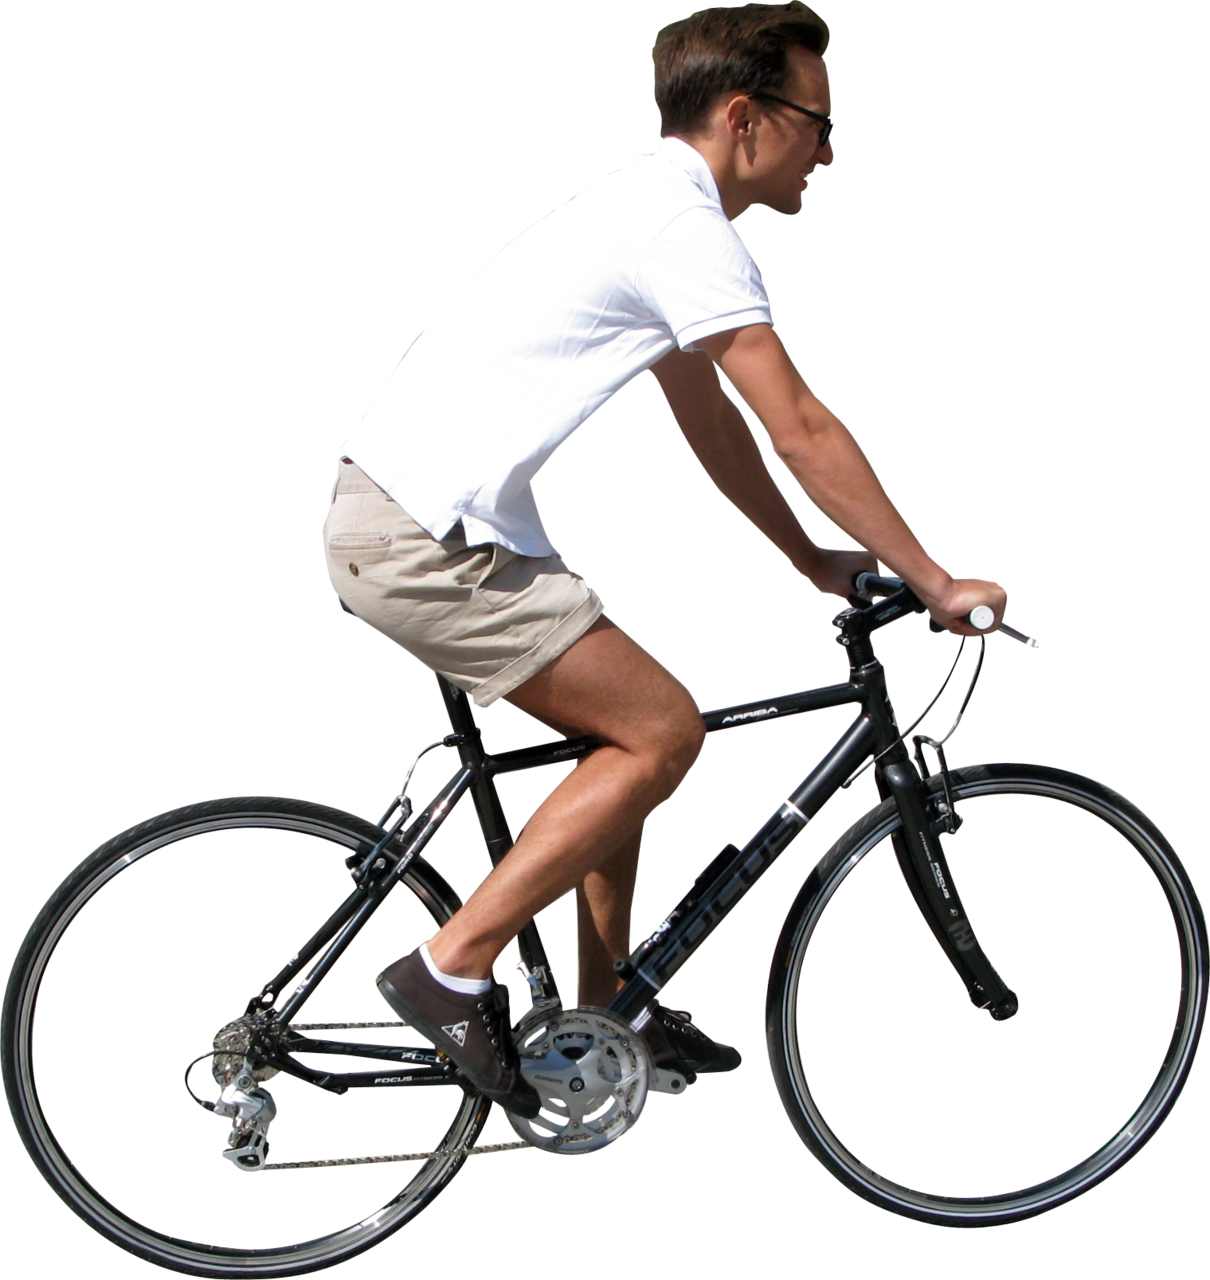 17 Photoshop Cut Out Cyclist Images - Cut Out People ...